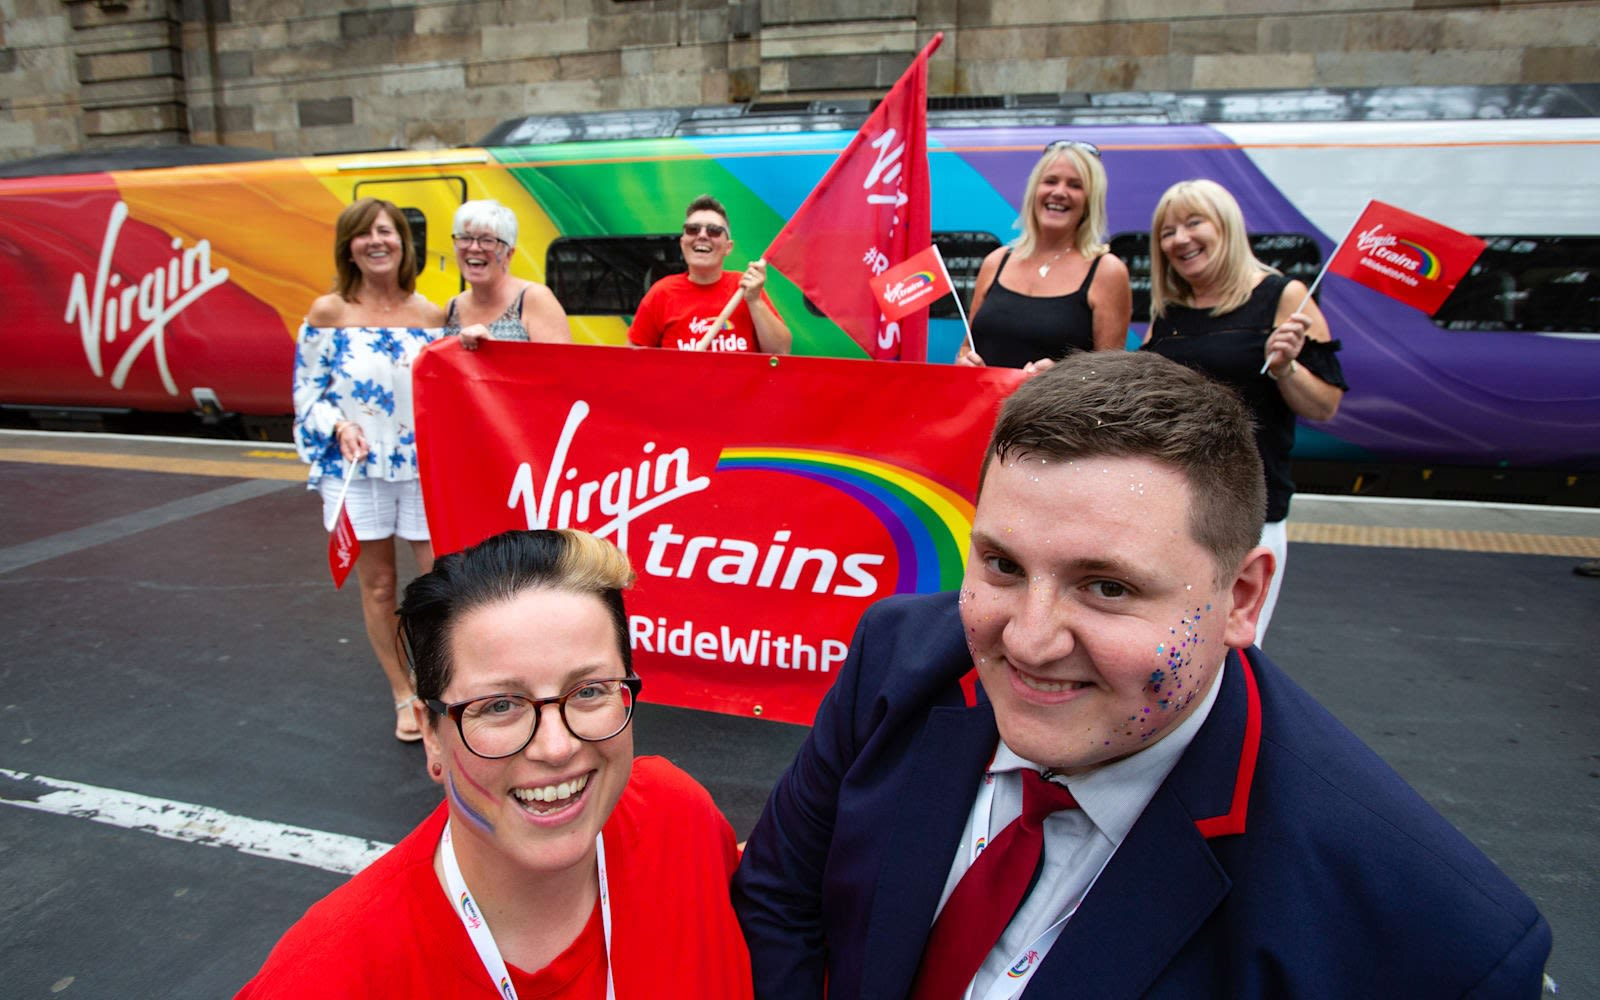 Vic Whitehouse and other Virgin Trains team members celebrate Pride in front of the Virgin Trains Pride train